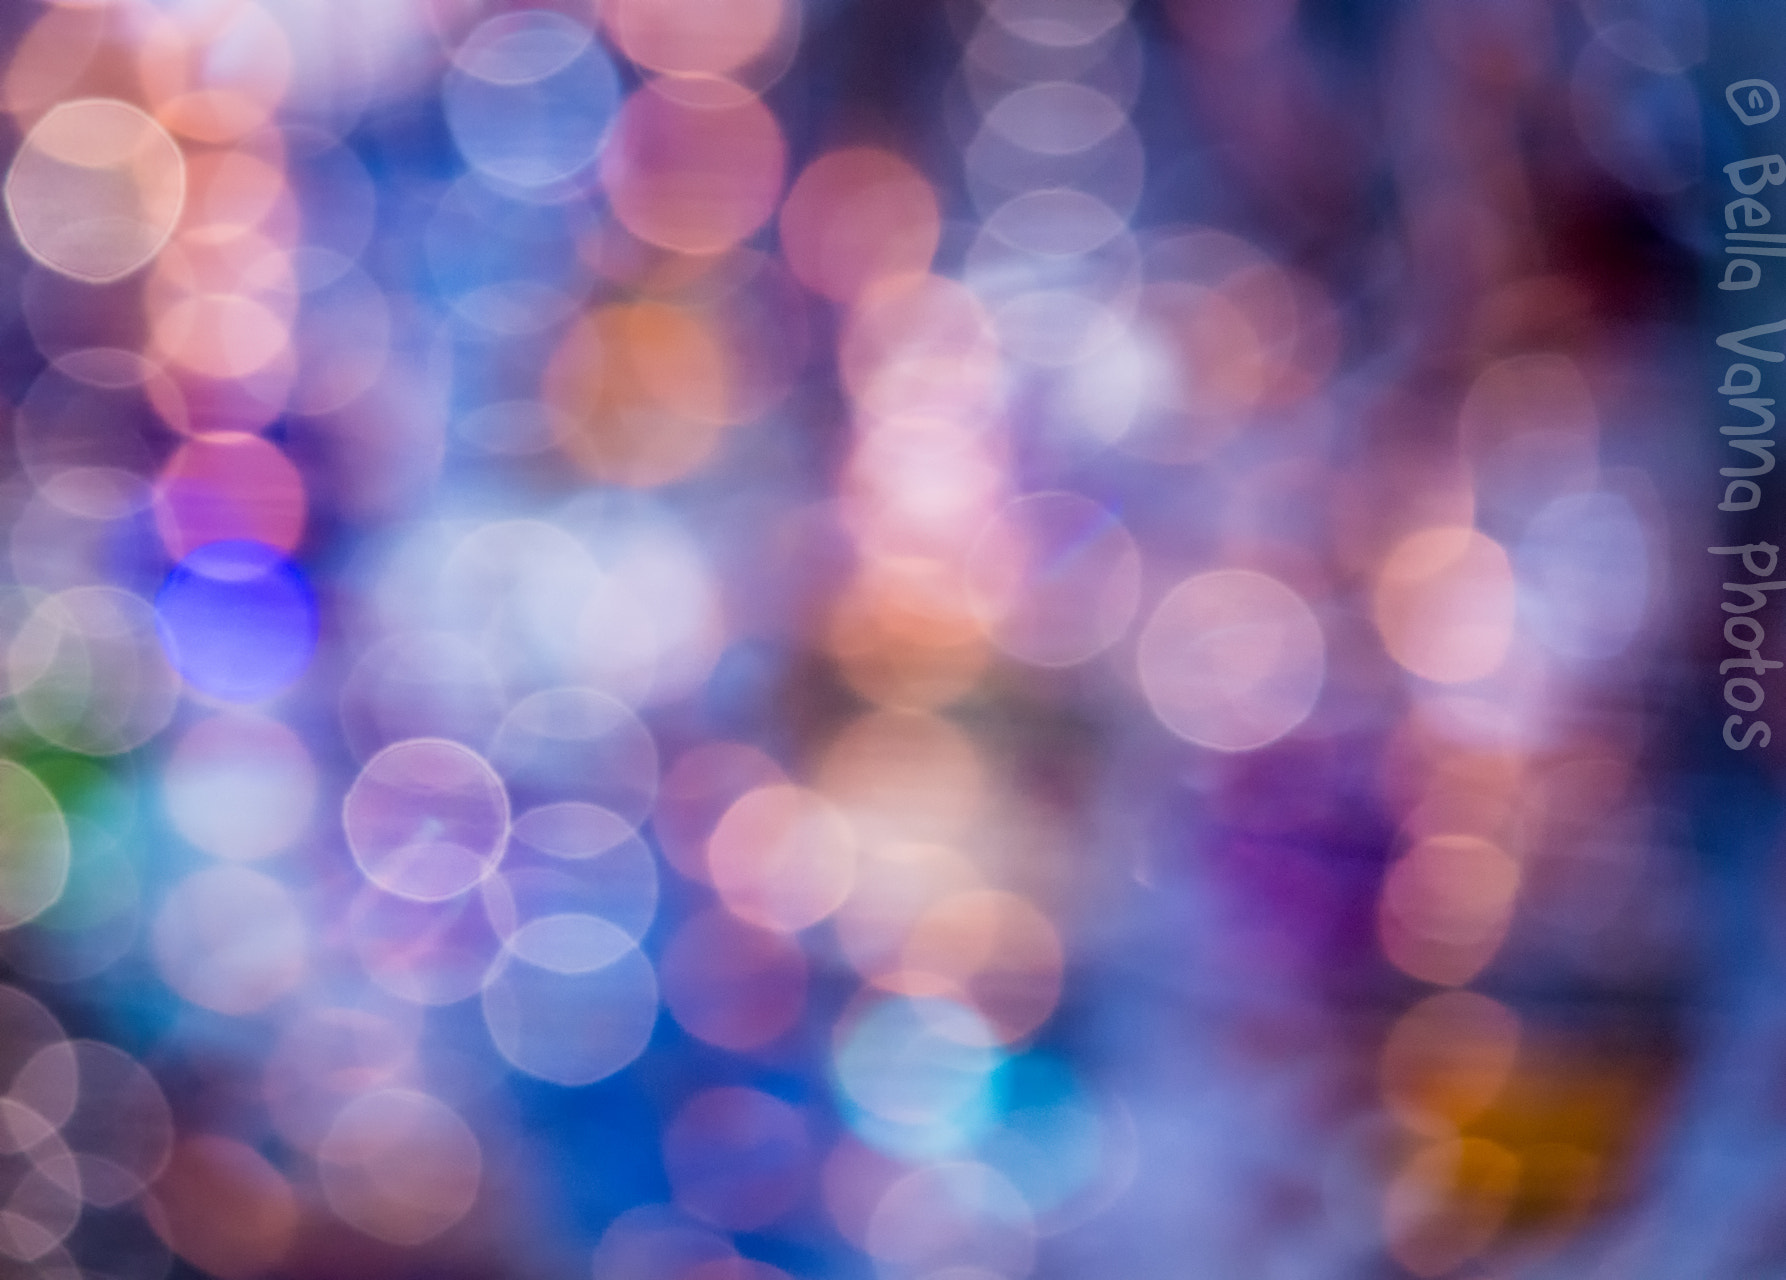 Photograph Bokeh Smurf by Joseph Castoire on 500px